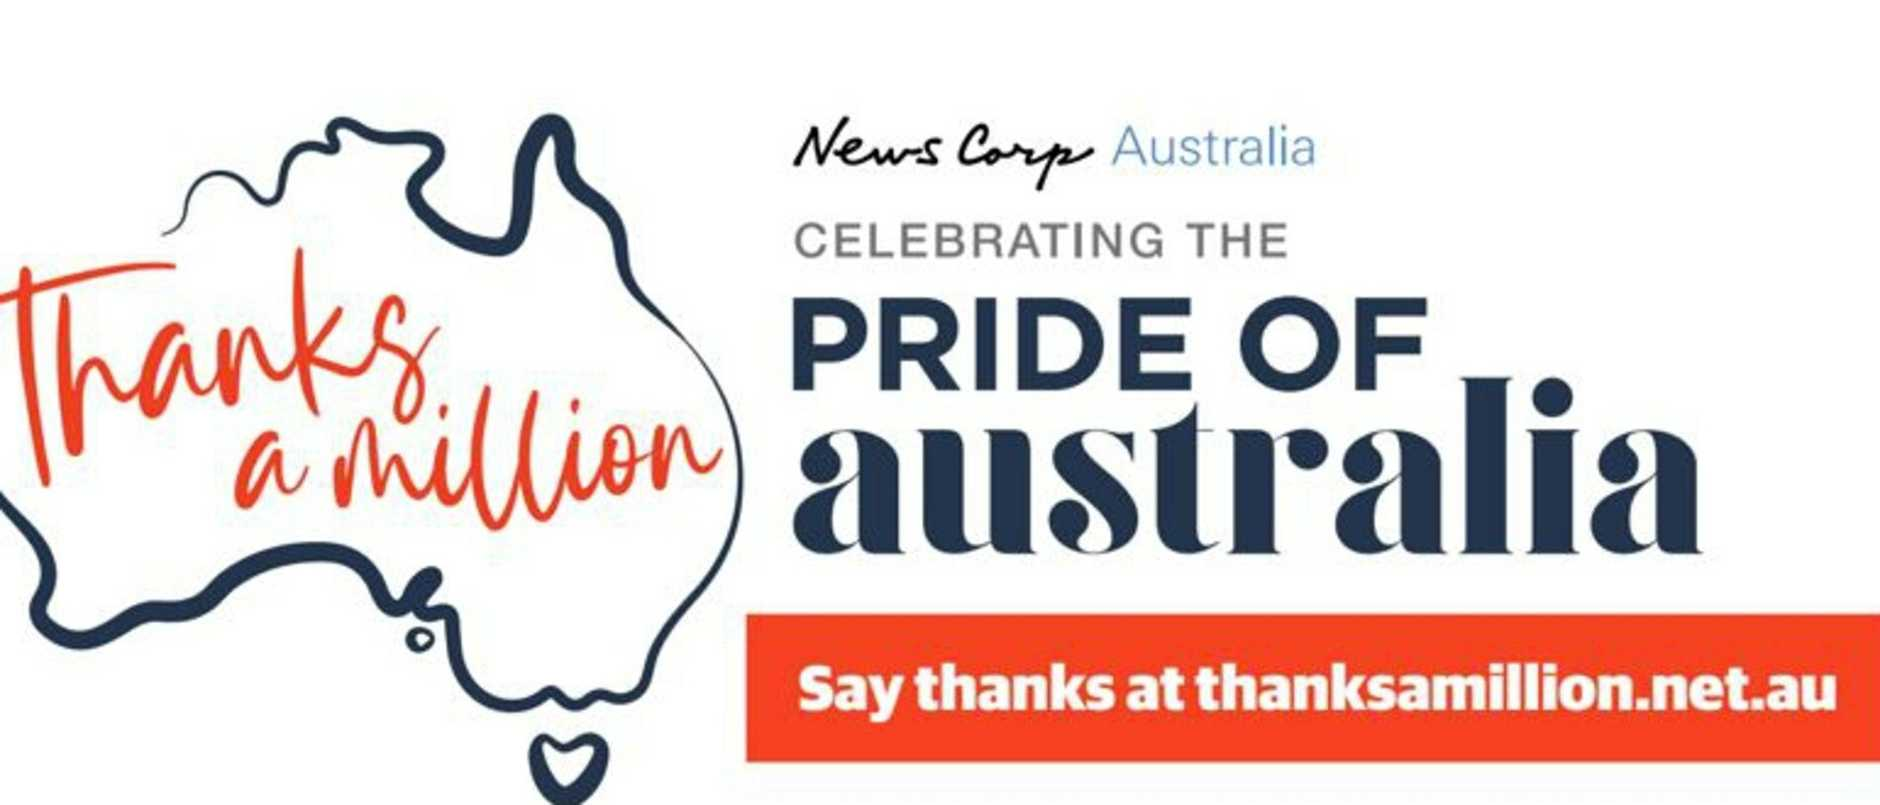 If you know someone kind, brave or selfless who should be celebrated and thanked for what they do, you can nominate them at www.thanksamillion.net.au/